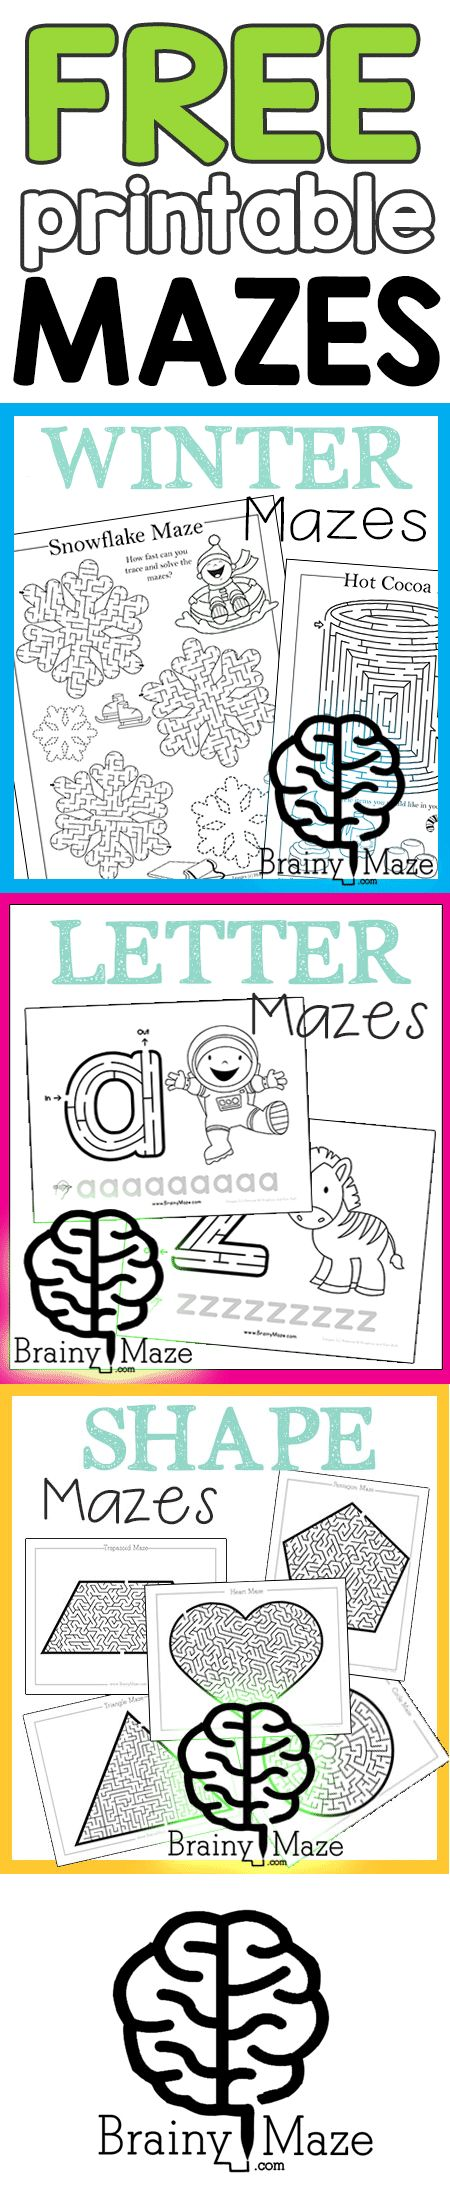 740 best otpt images on pinterest occupational therapy physical free printable mazes all organized by subject and theme educational activities paired with fun mazes and best of all free fandeluxe Choice Image